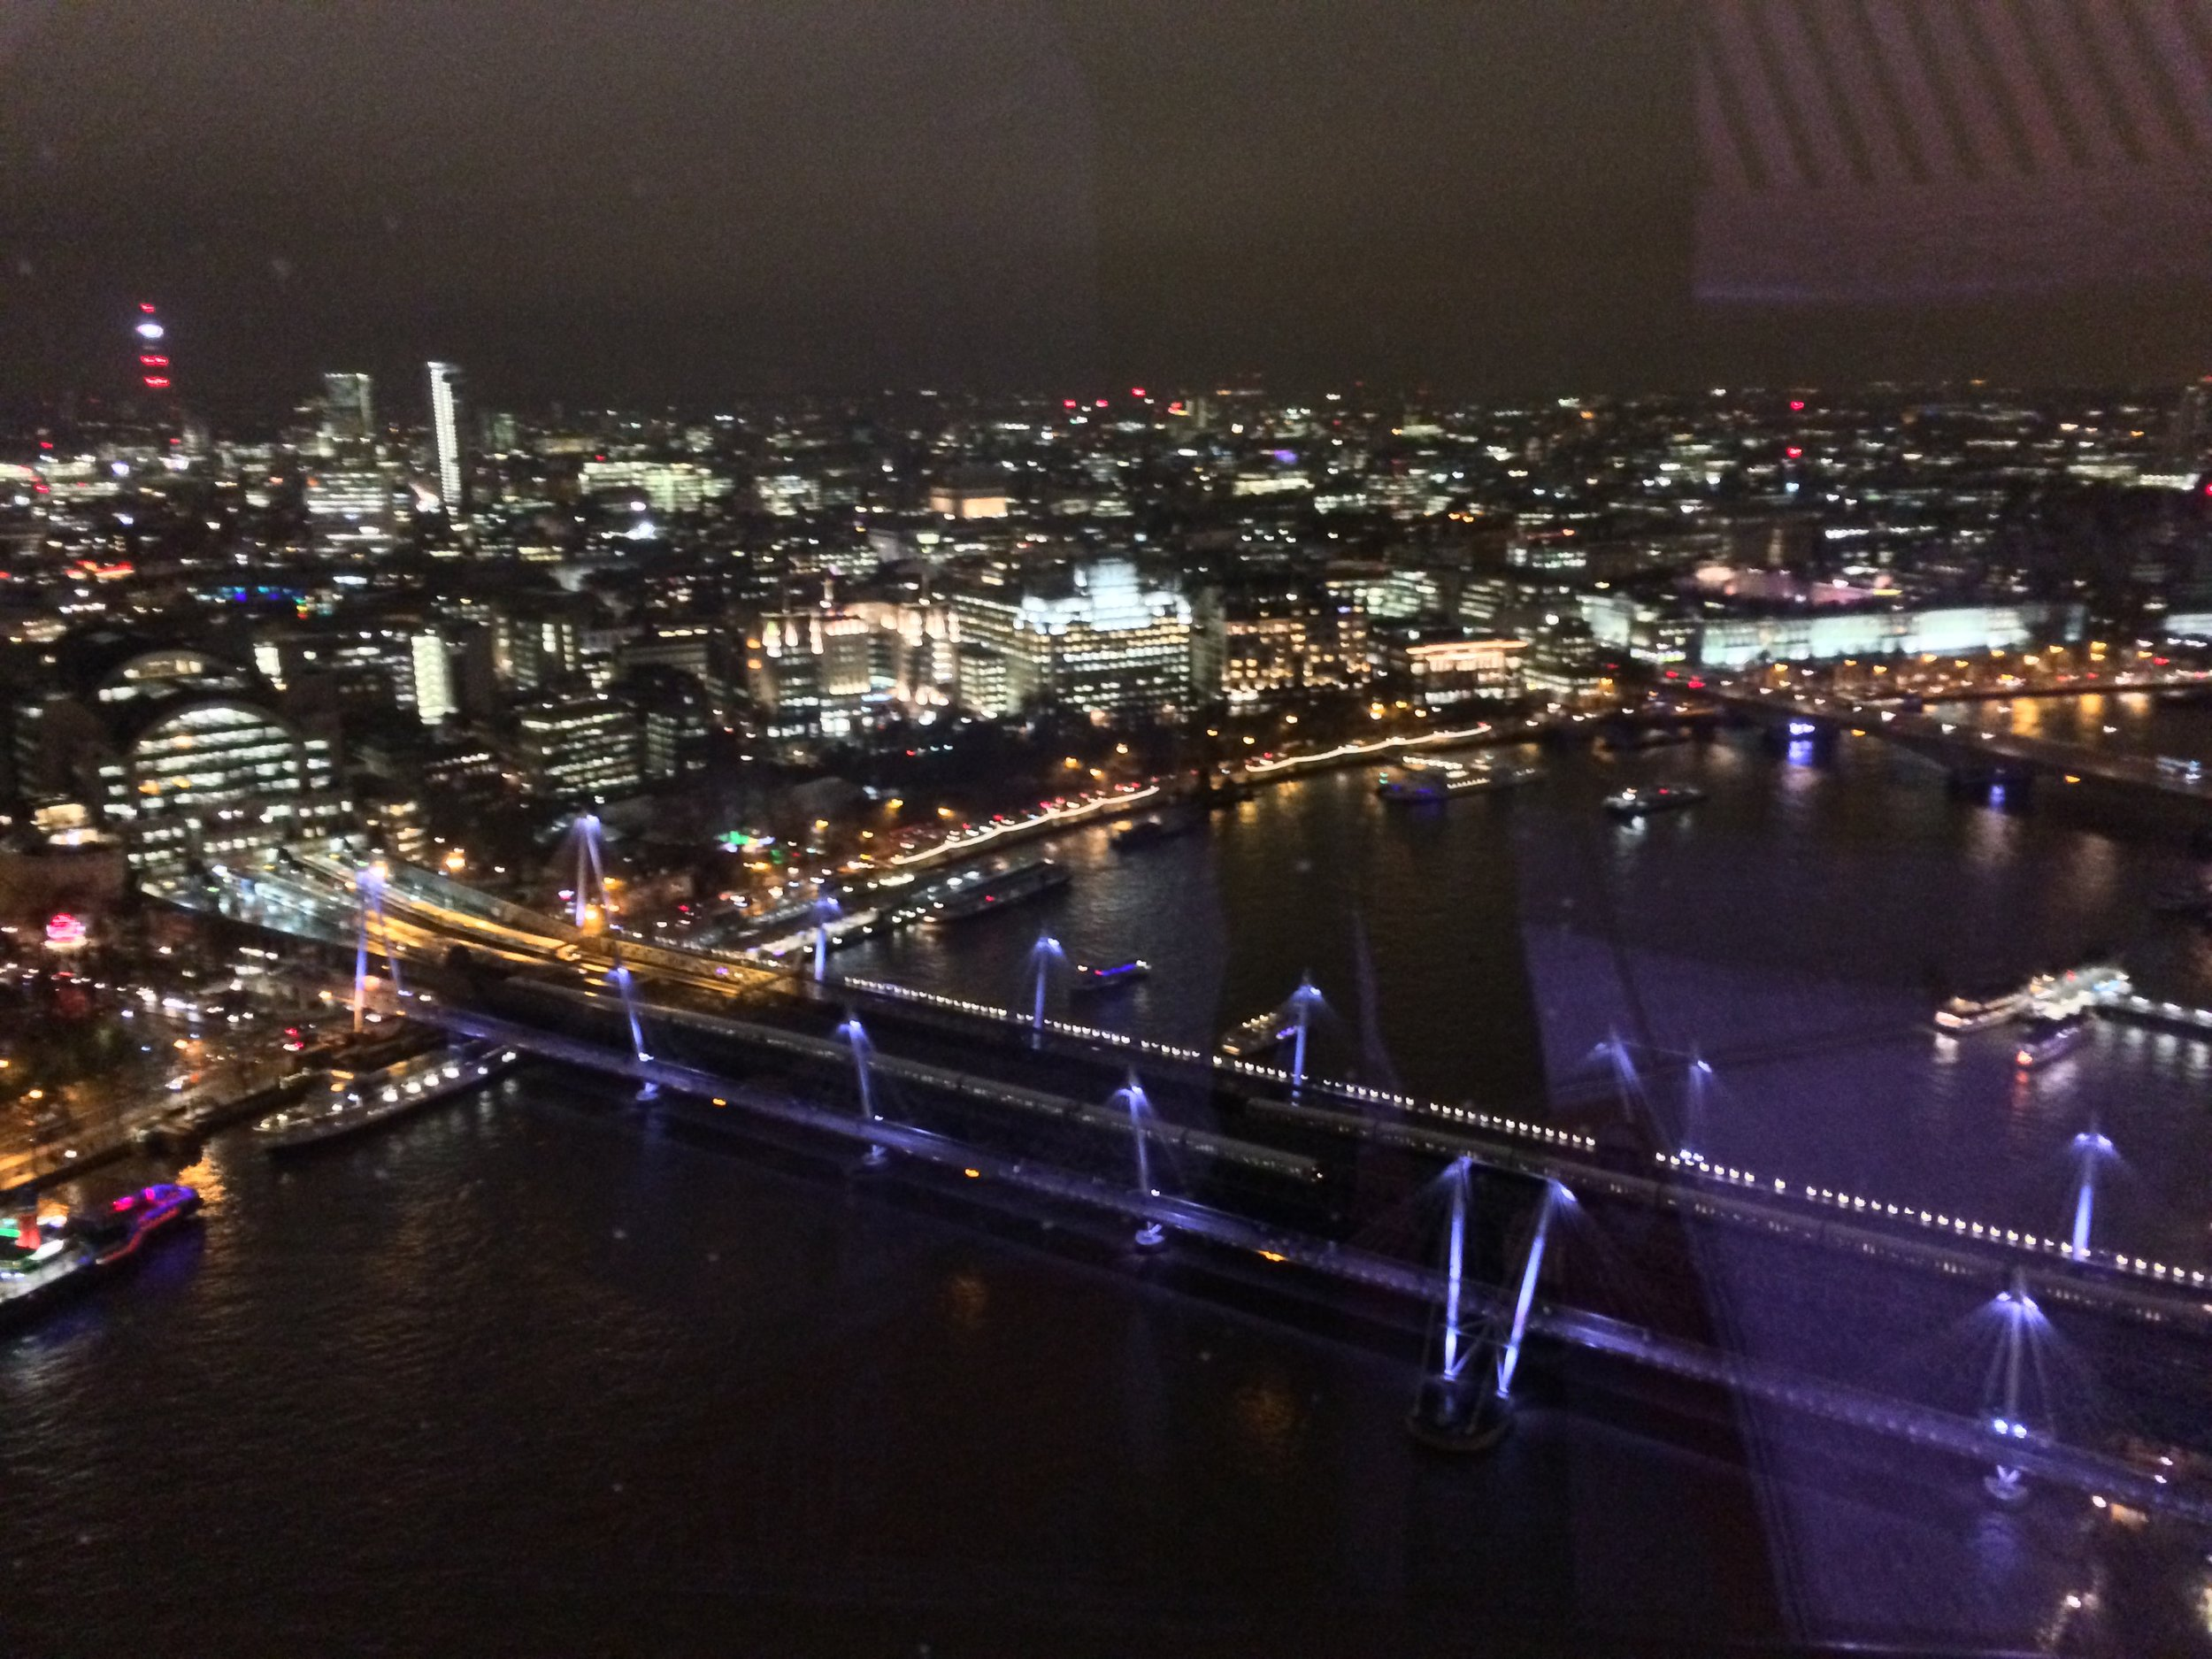 Day or night, the London Eye provides spectacular views of the city.